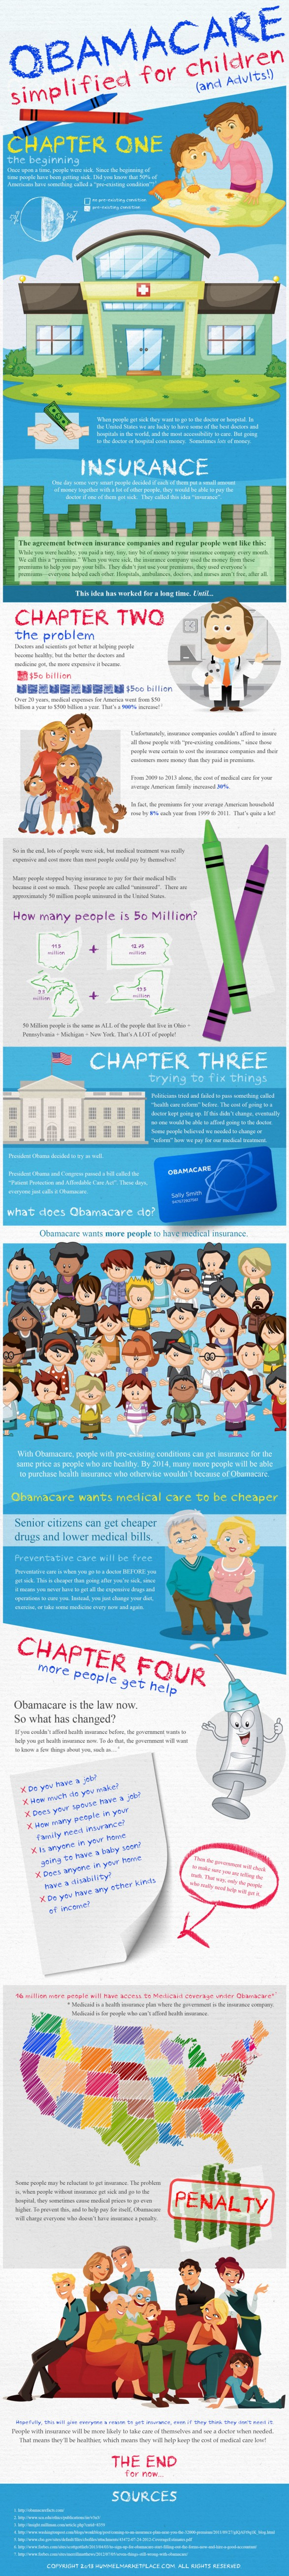 obamacare-simplified-for-children_524e6f26d1d27_w587